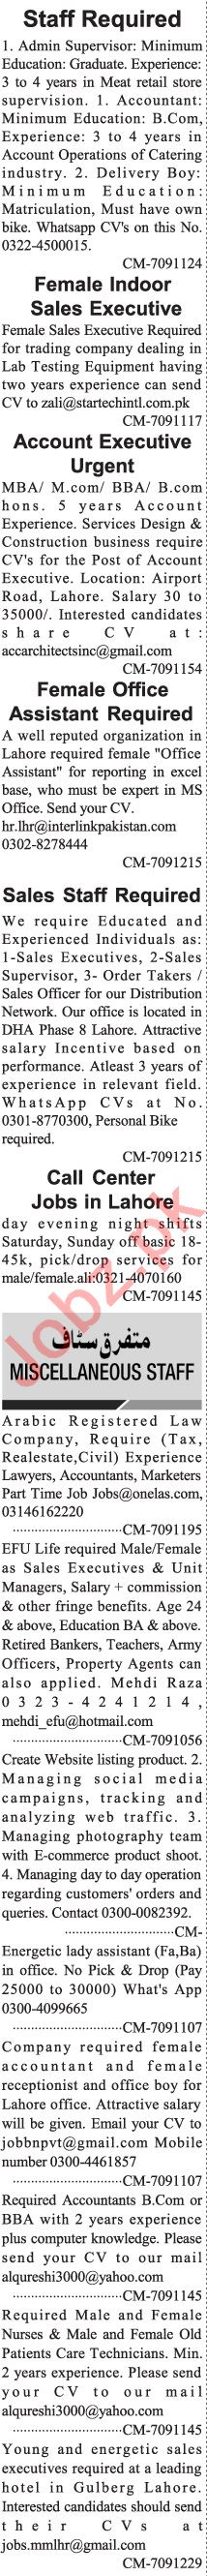 Jang Sunday Classified Ads 29 Nov 2020 for Admin Staff